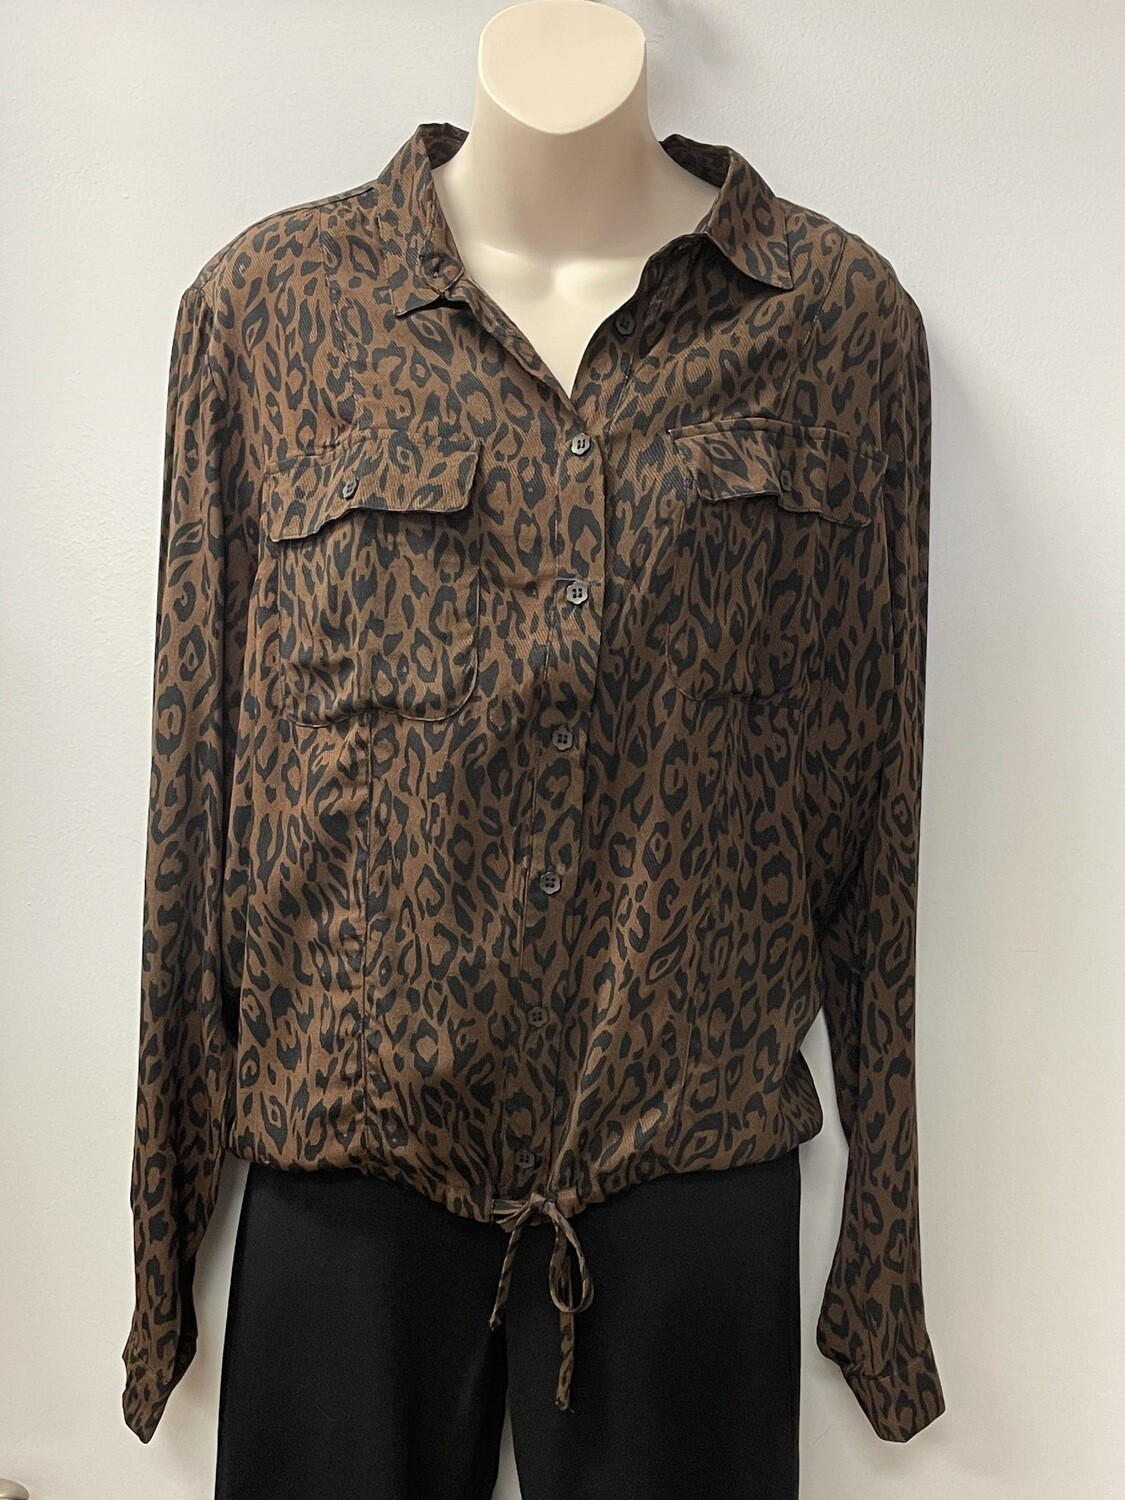 Yest Leopard Button Up Top